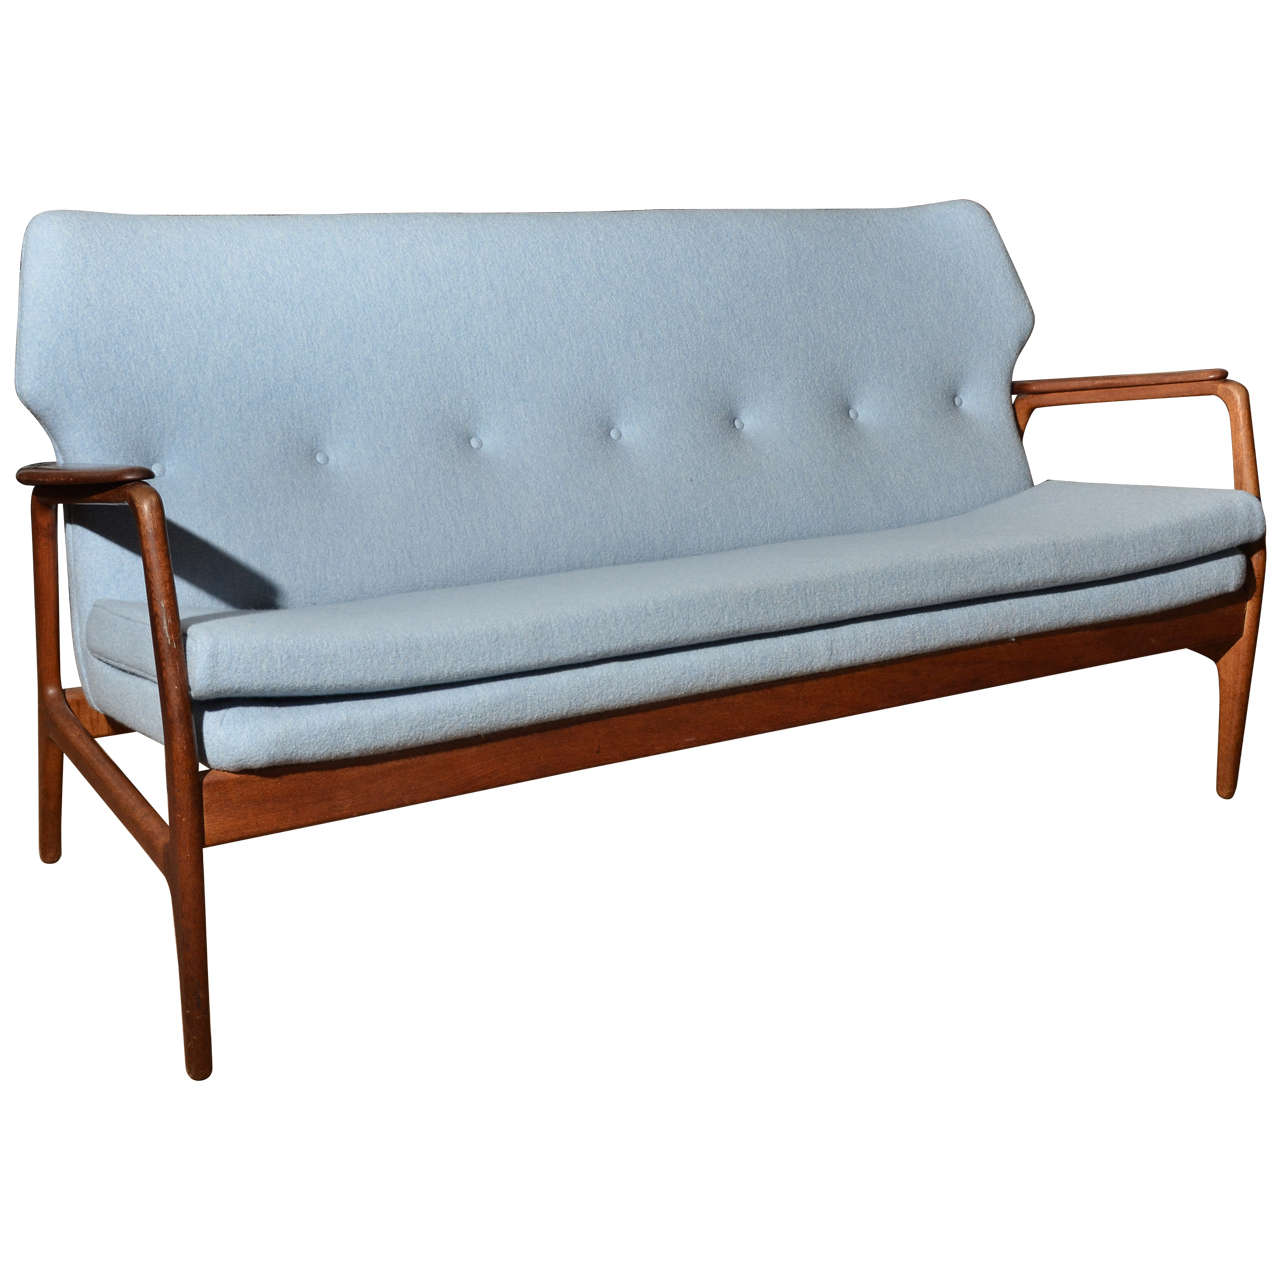 1960s Missoni Wingback Chair At 1stdibs: 1960's Wingback Sofa By Bovenkamp, Holland For Sale At 1stdibs